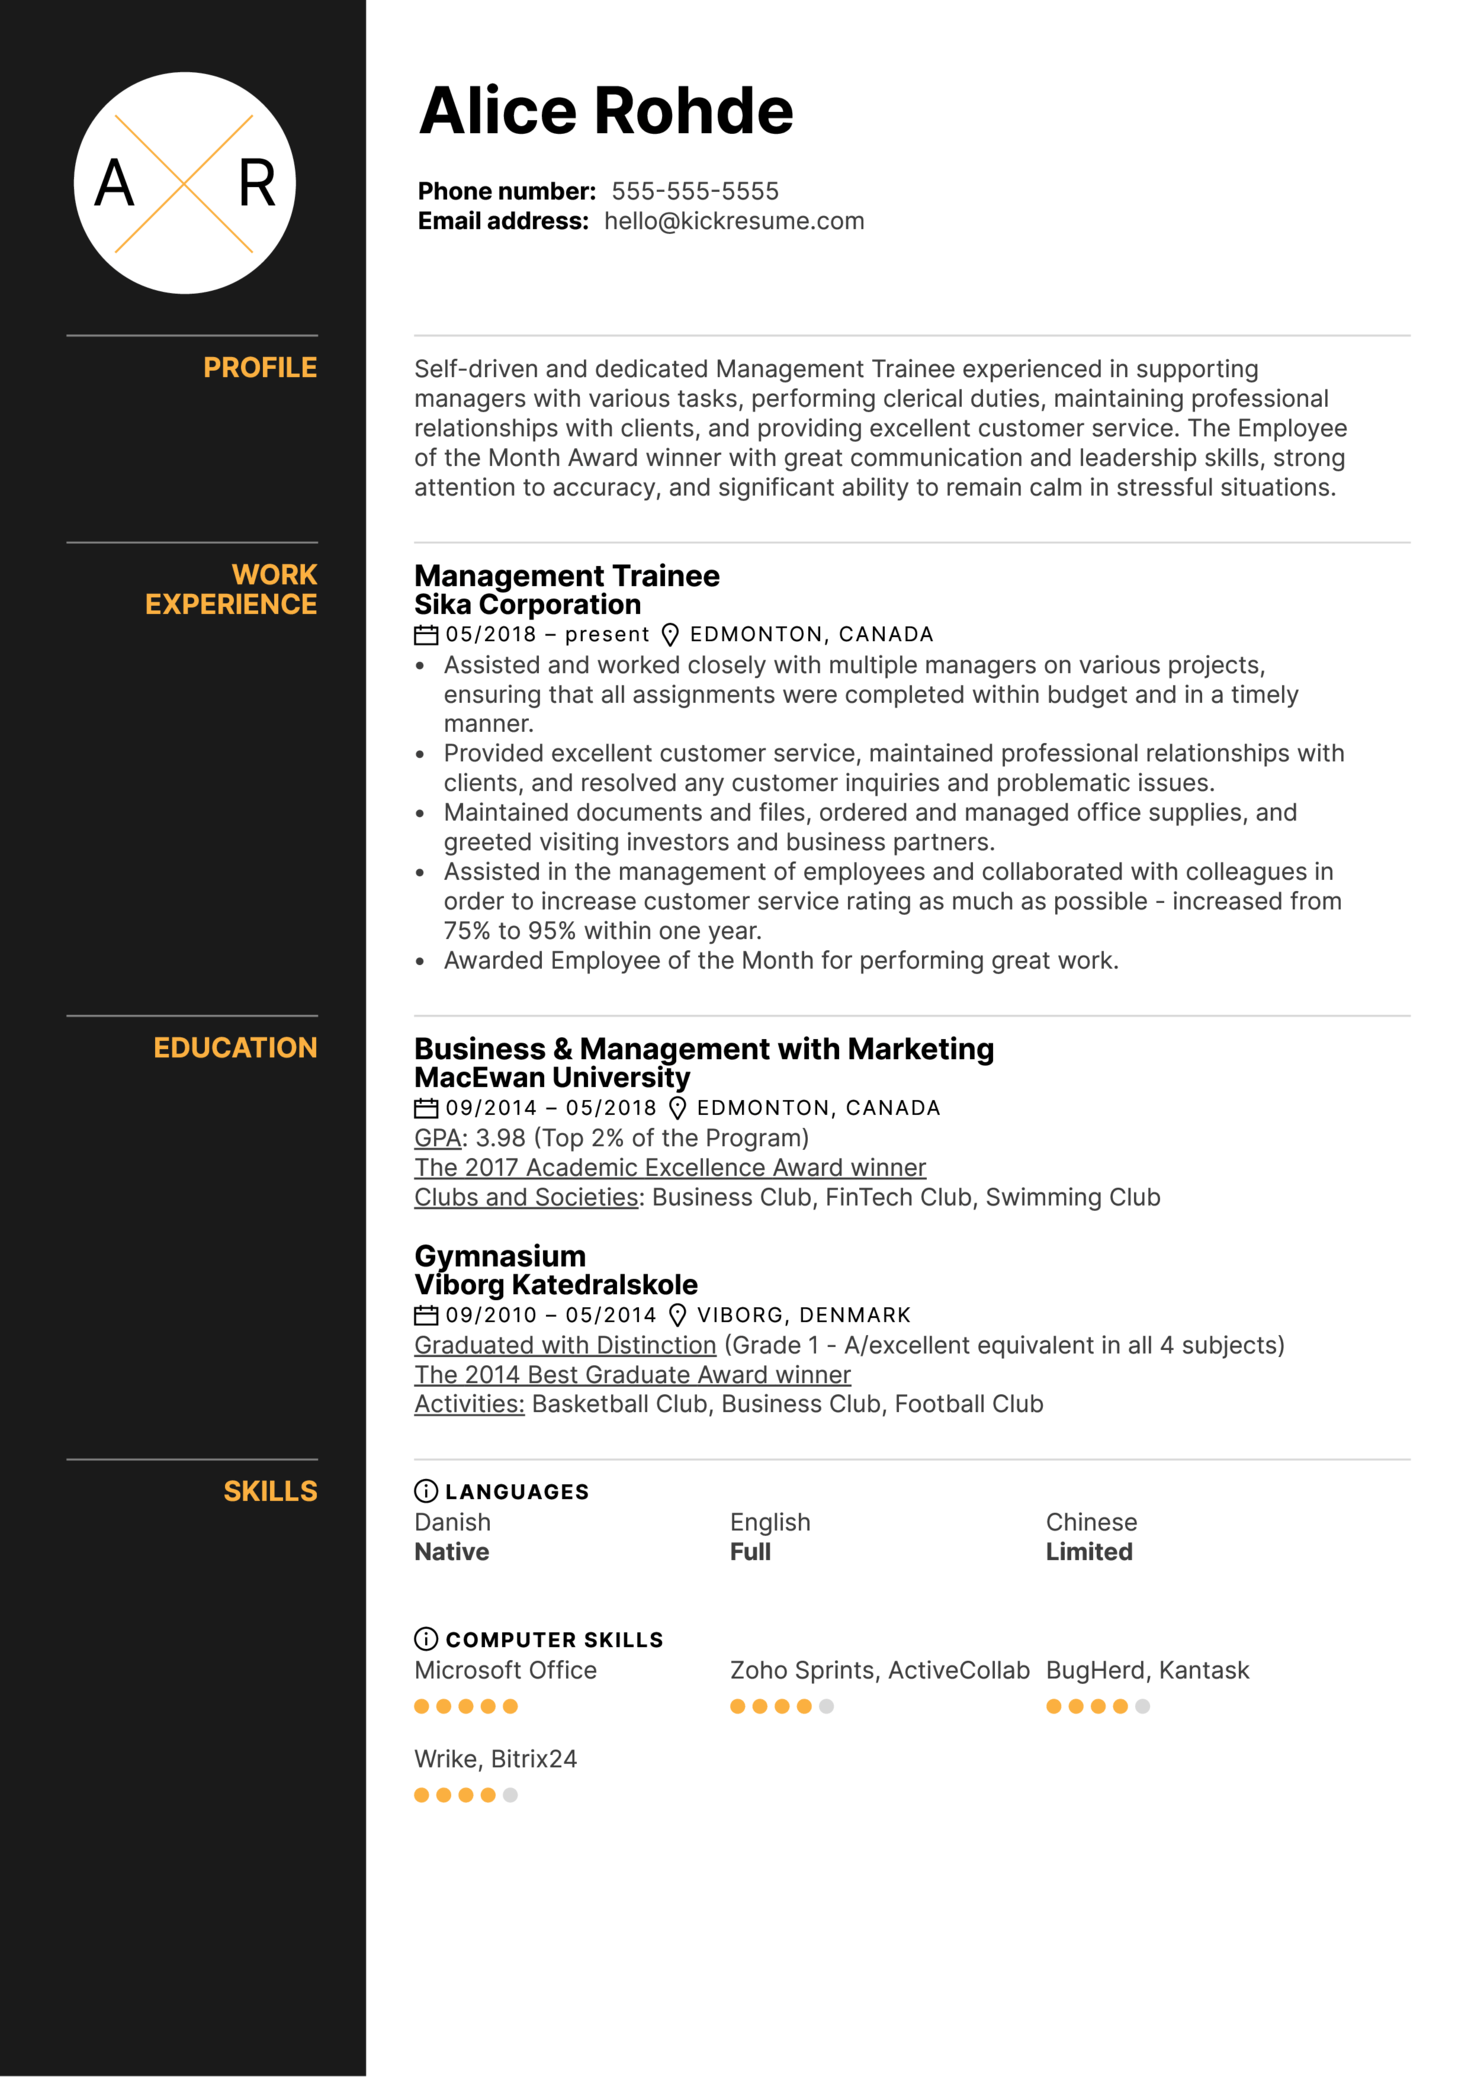 Management Trainee Resume Example Kickresume